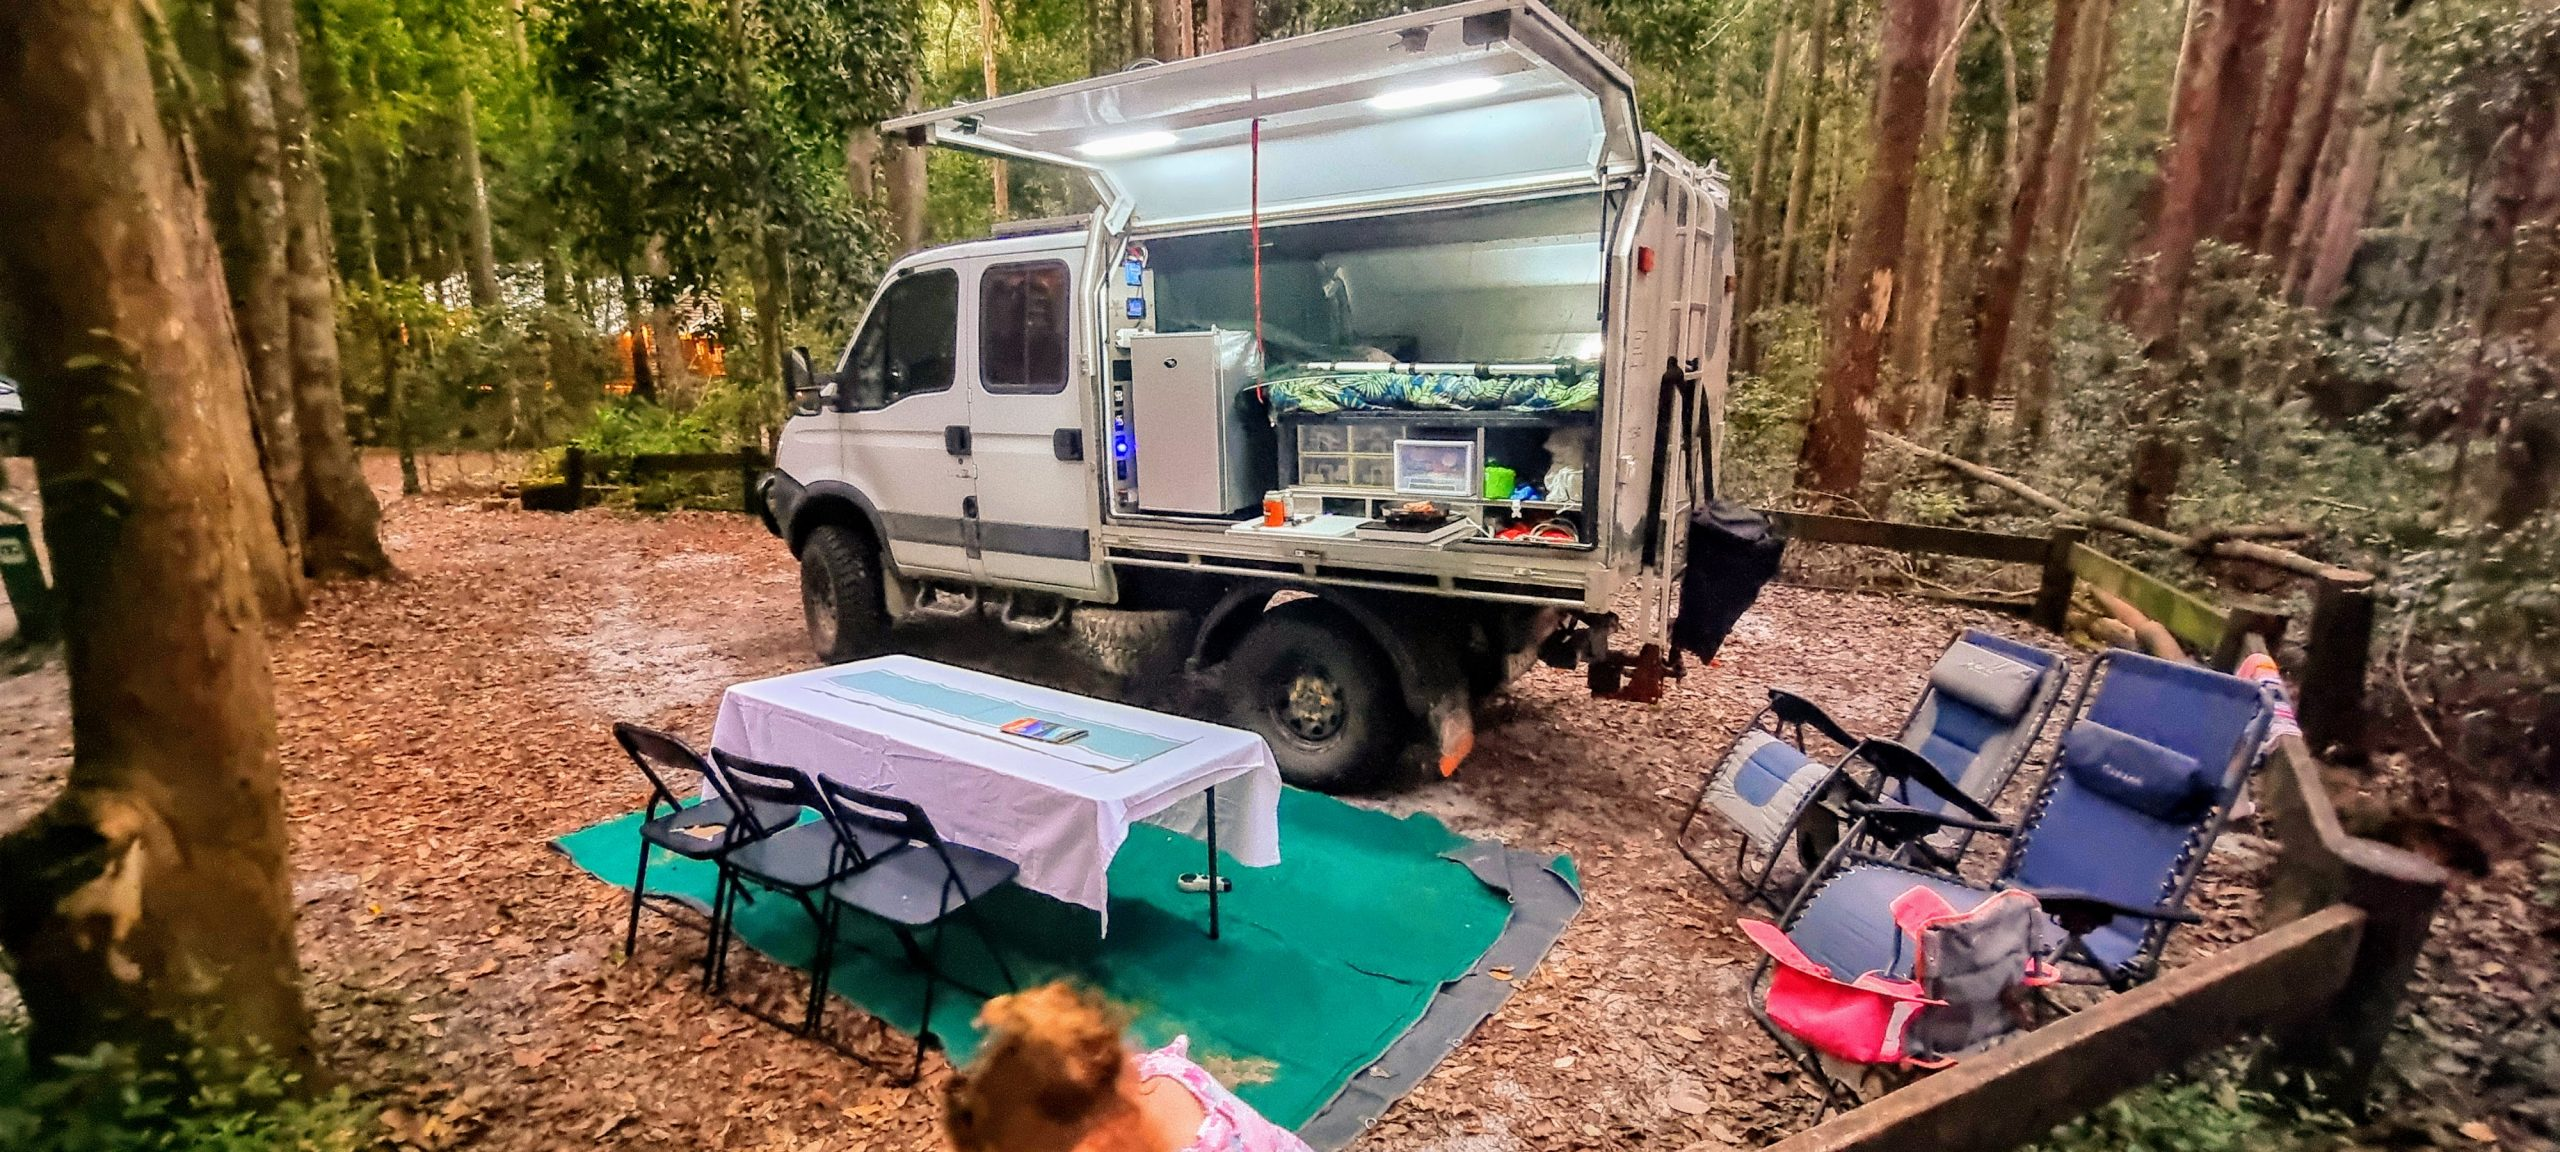 Our 3 most Beautiful Campsites in 6 months on the road.